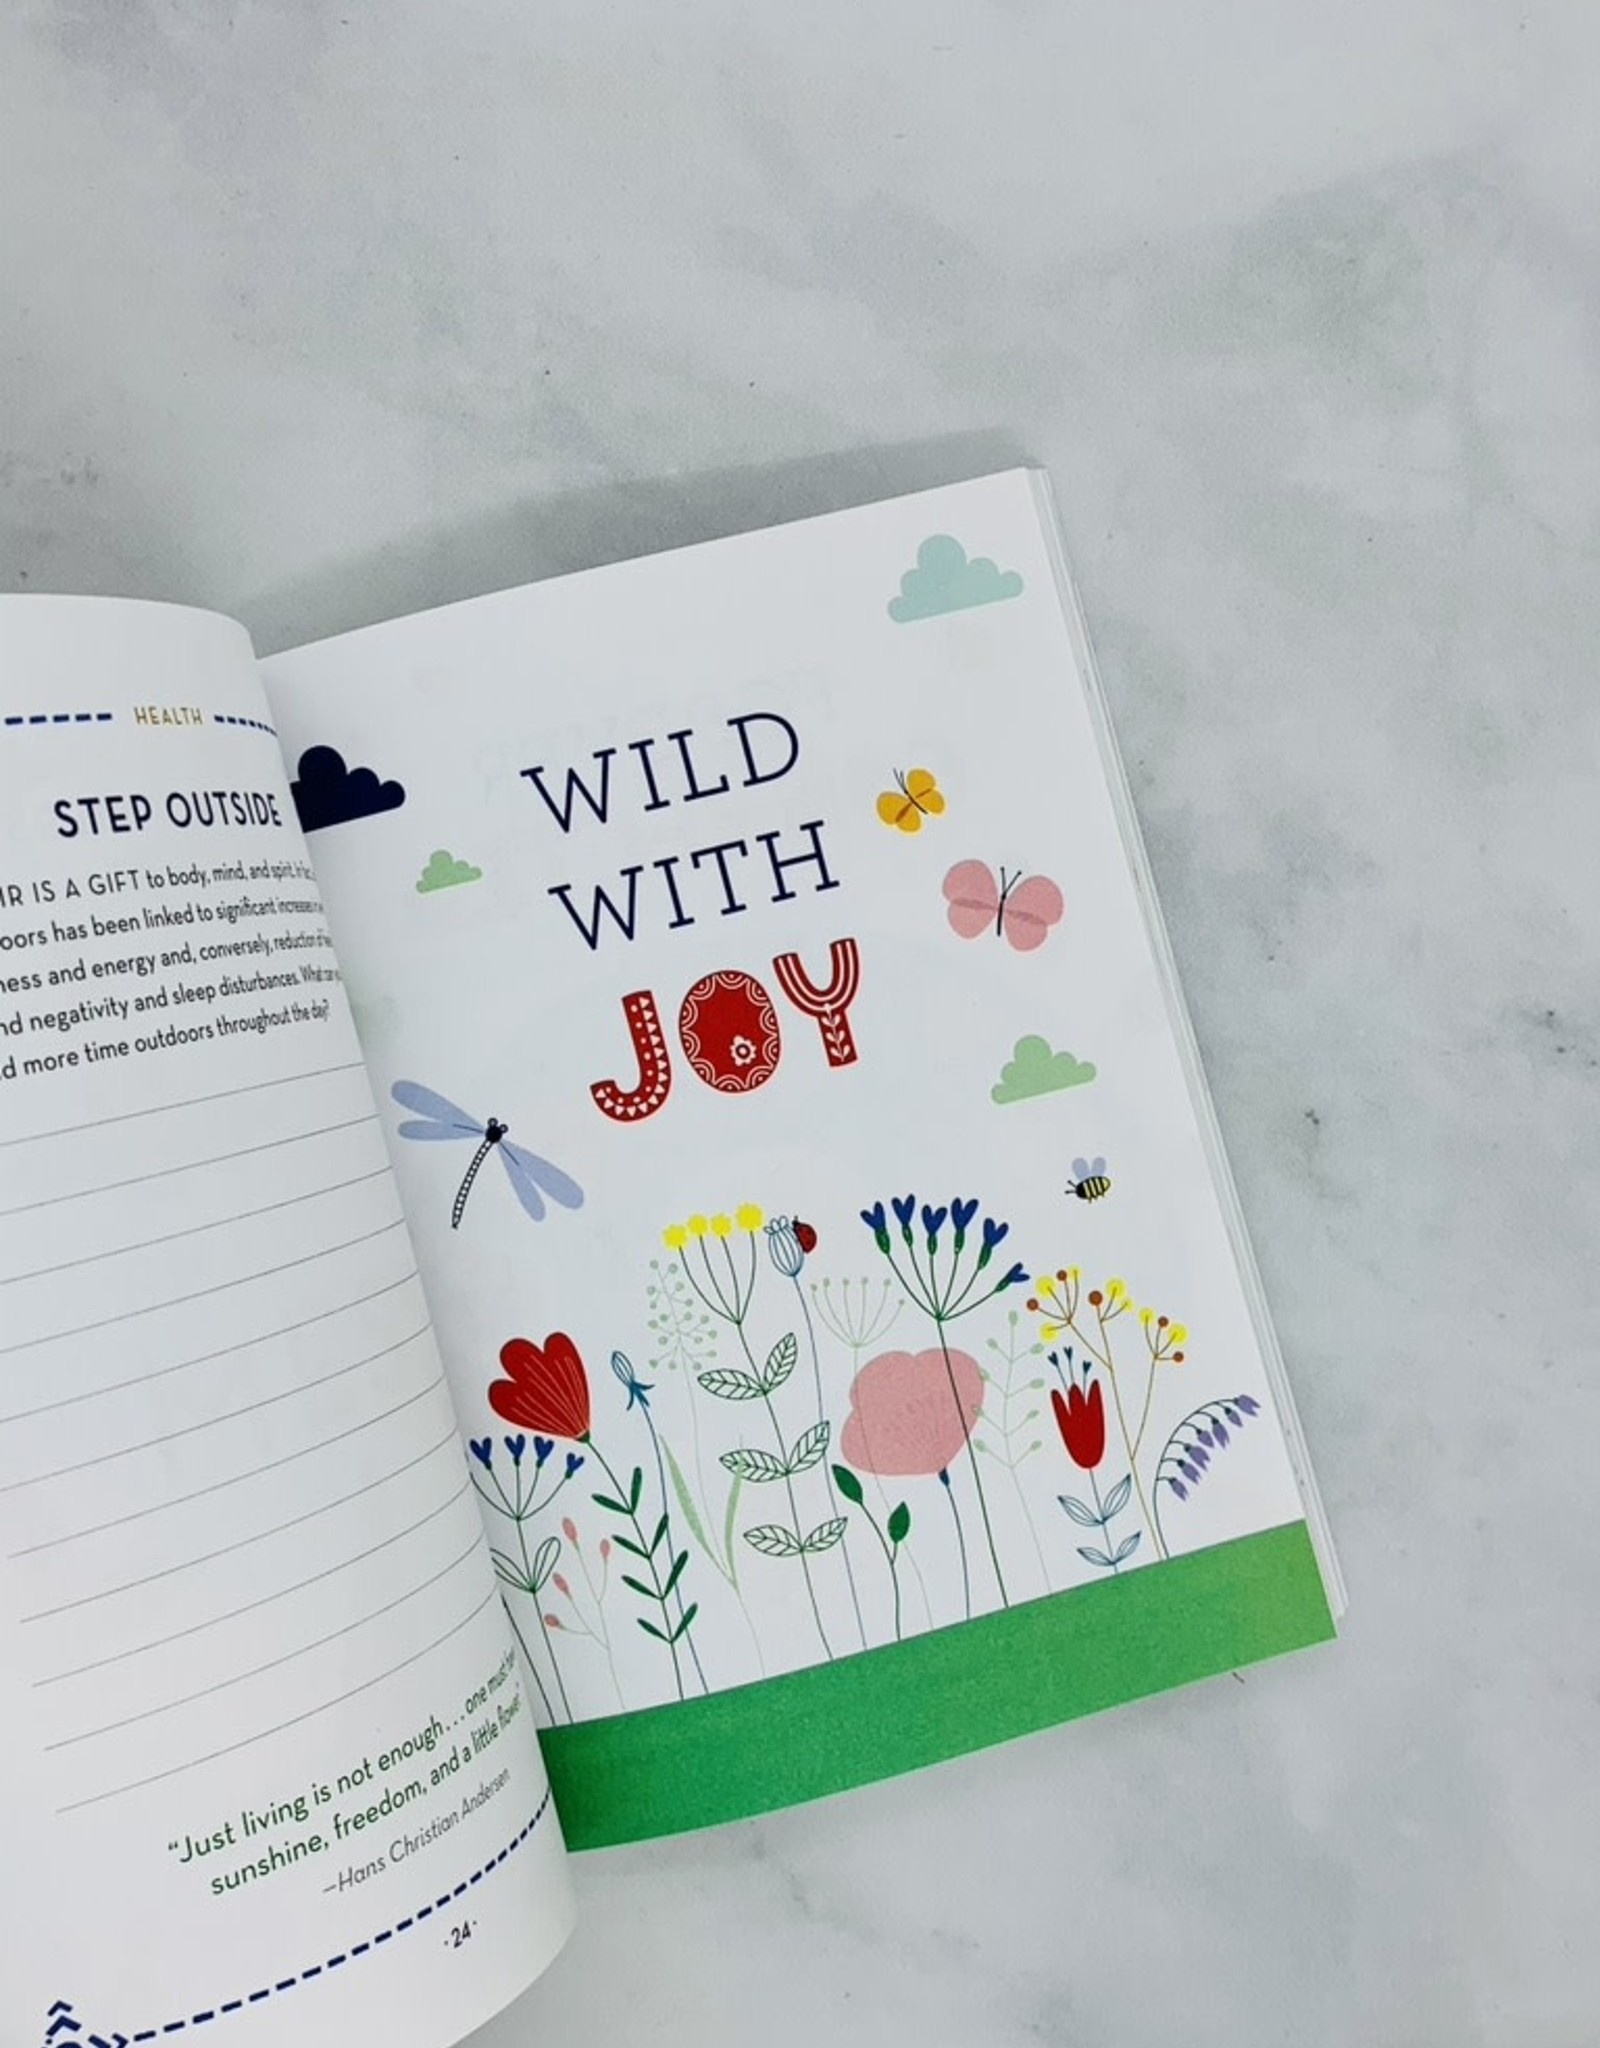 My Little Lykke Journal How to be happy by Fidning the Good in the World